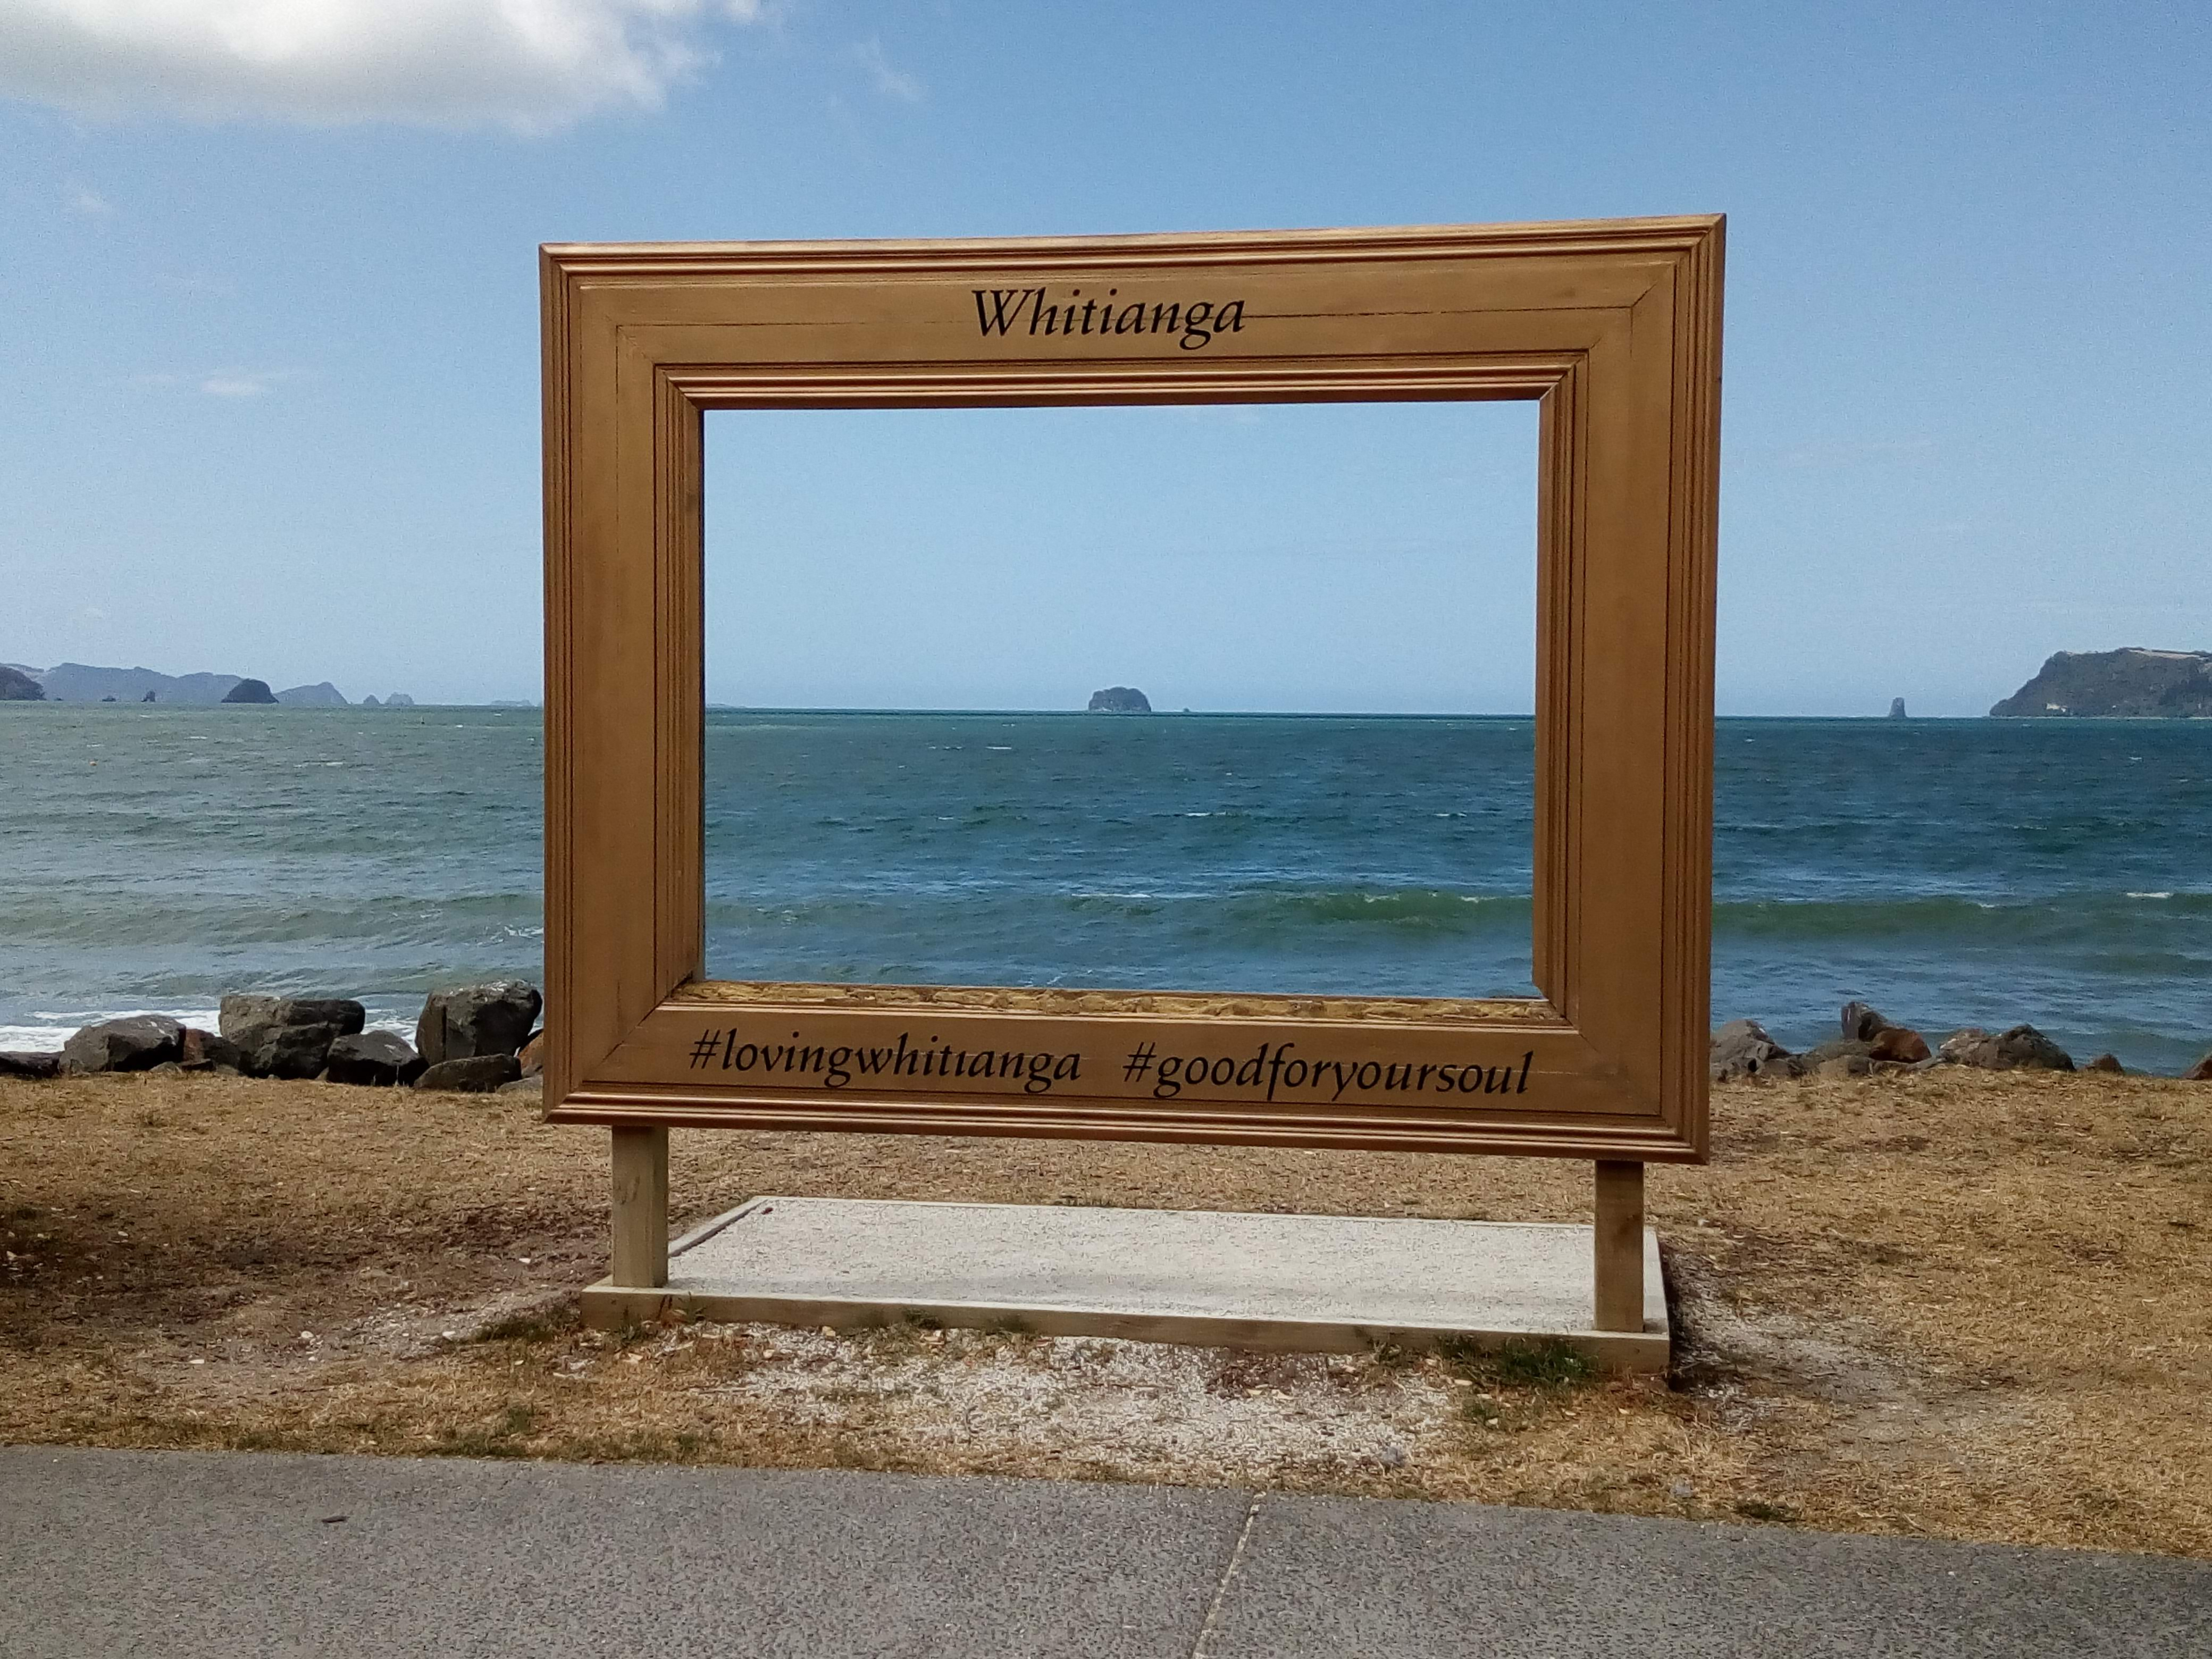 What a view to frame. Whitianga in the Coromandel.